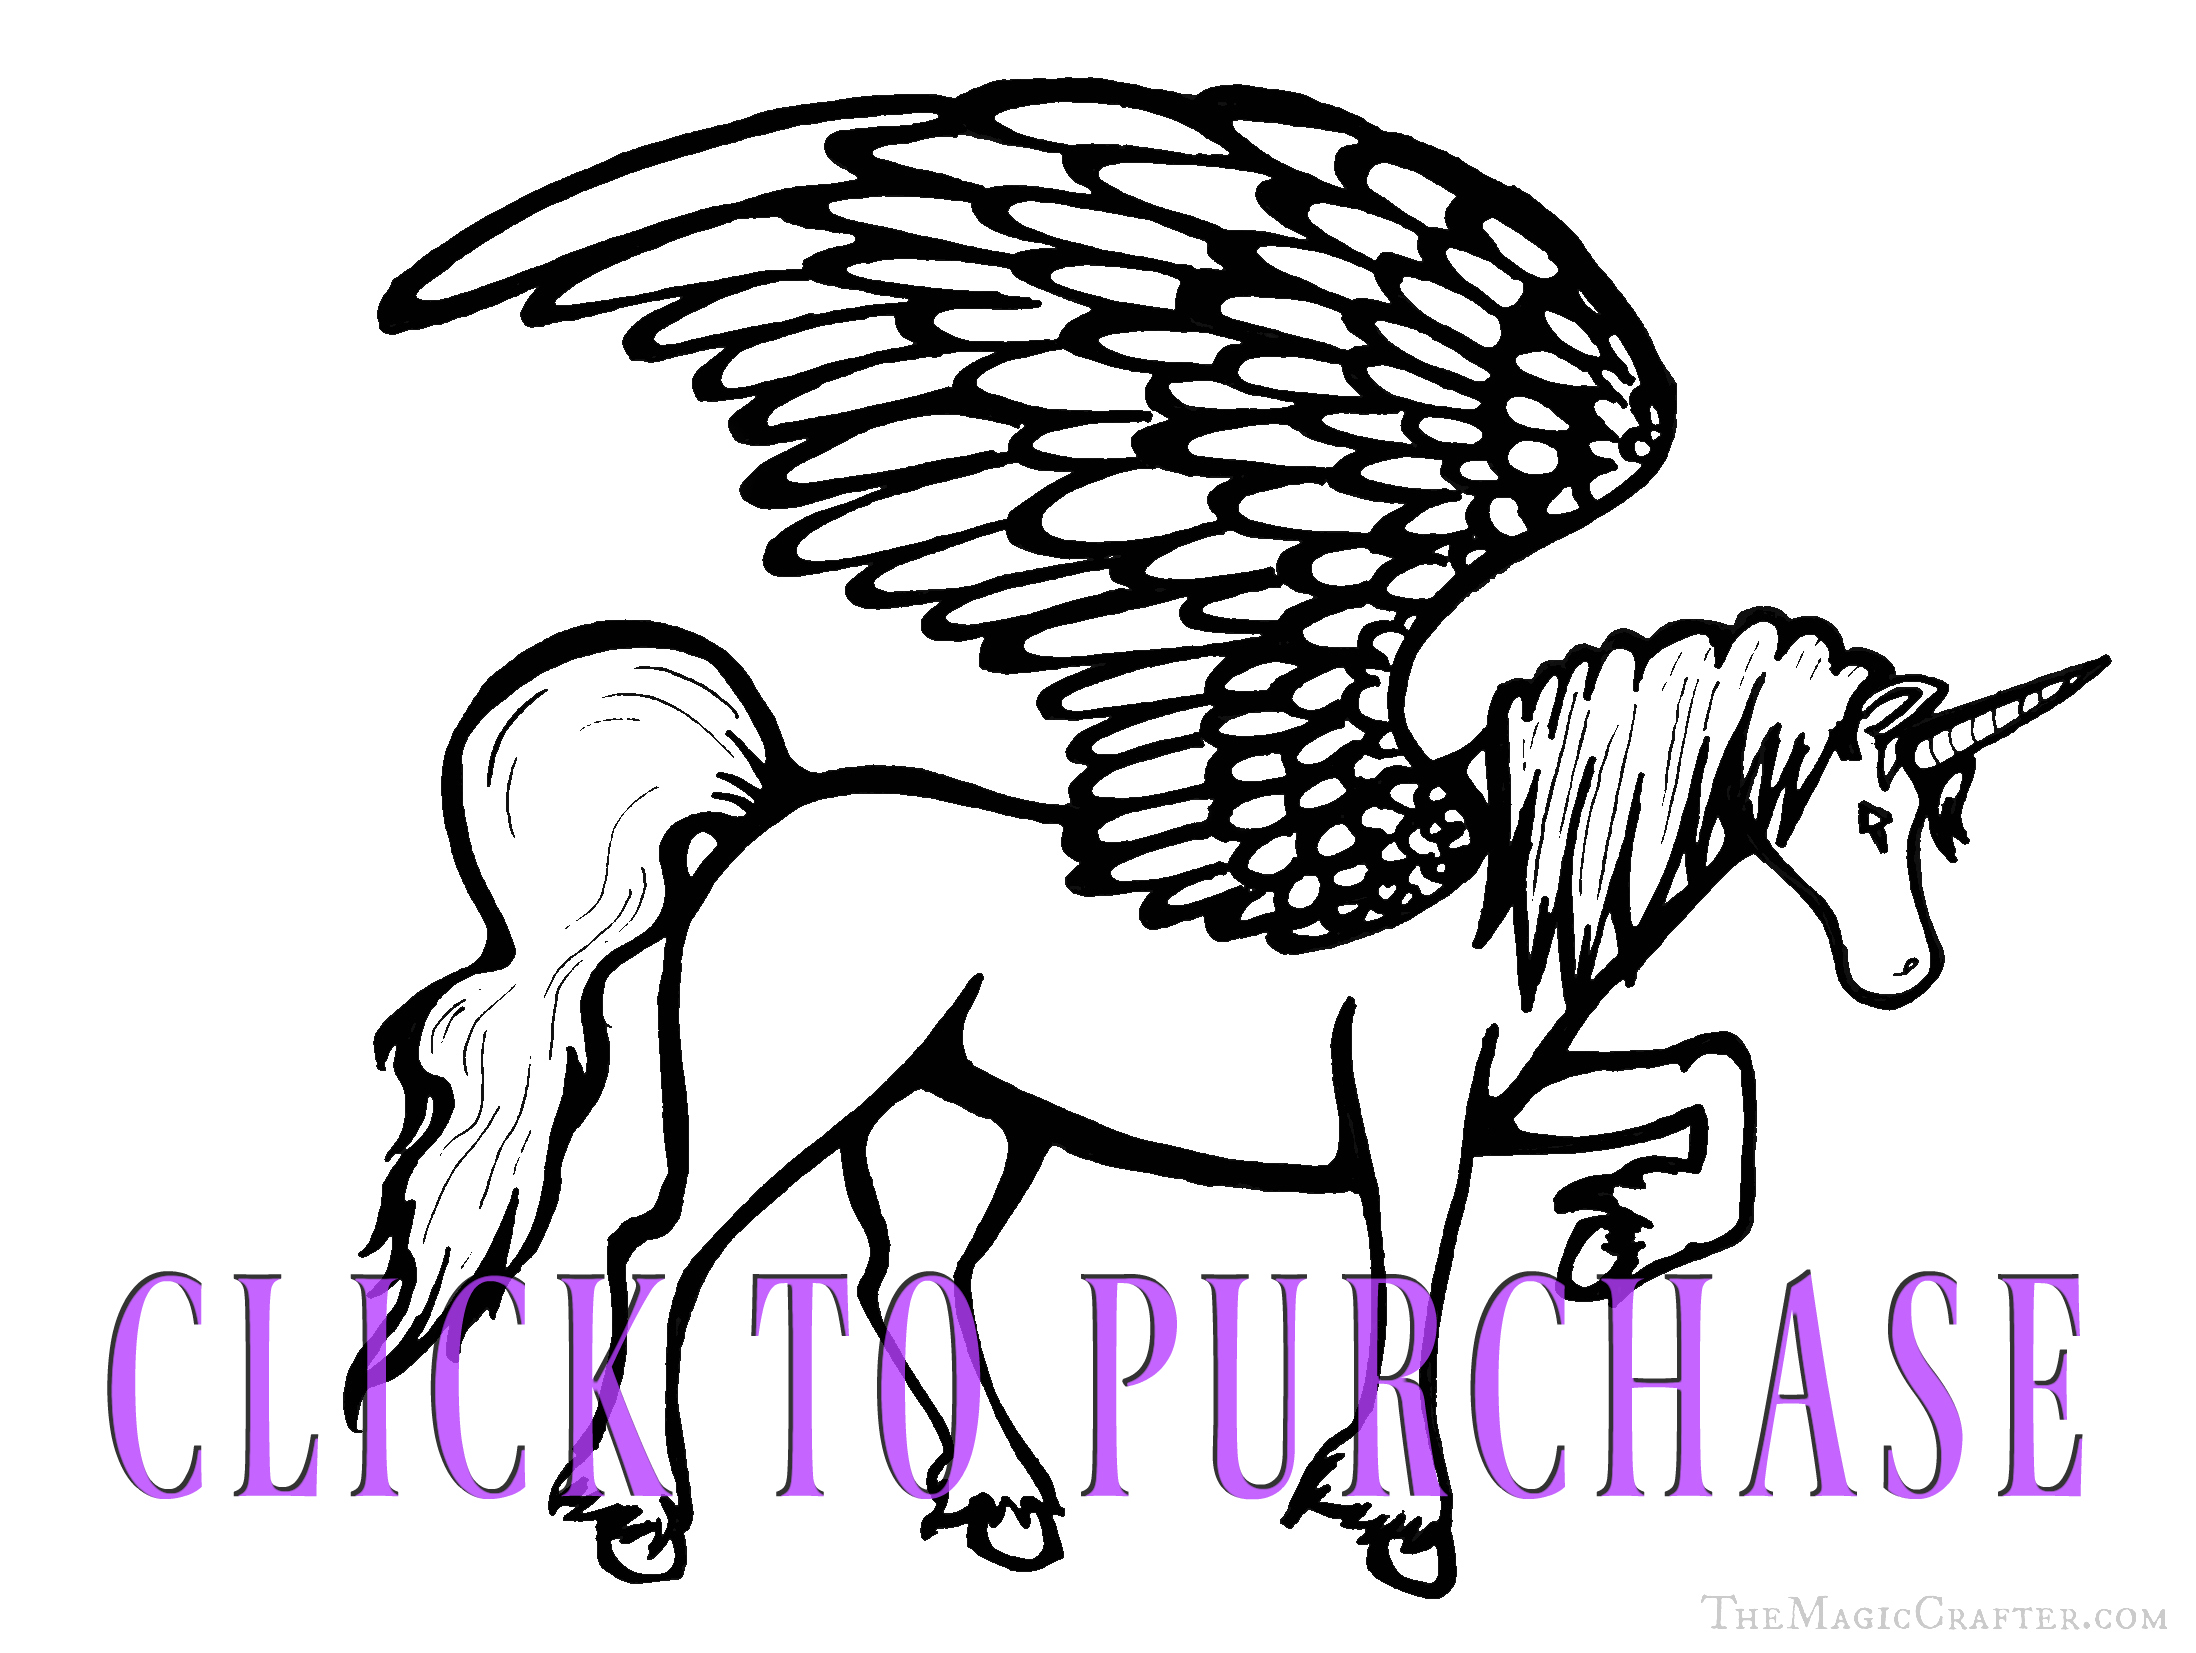 Unicorn Coloring Pages! Download a Unicorn Coloring Page from The Magic Crafter on Etsy! Click on this image to buy this printable coloring sheet.